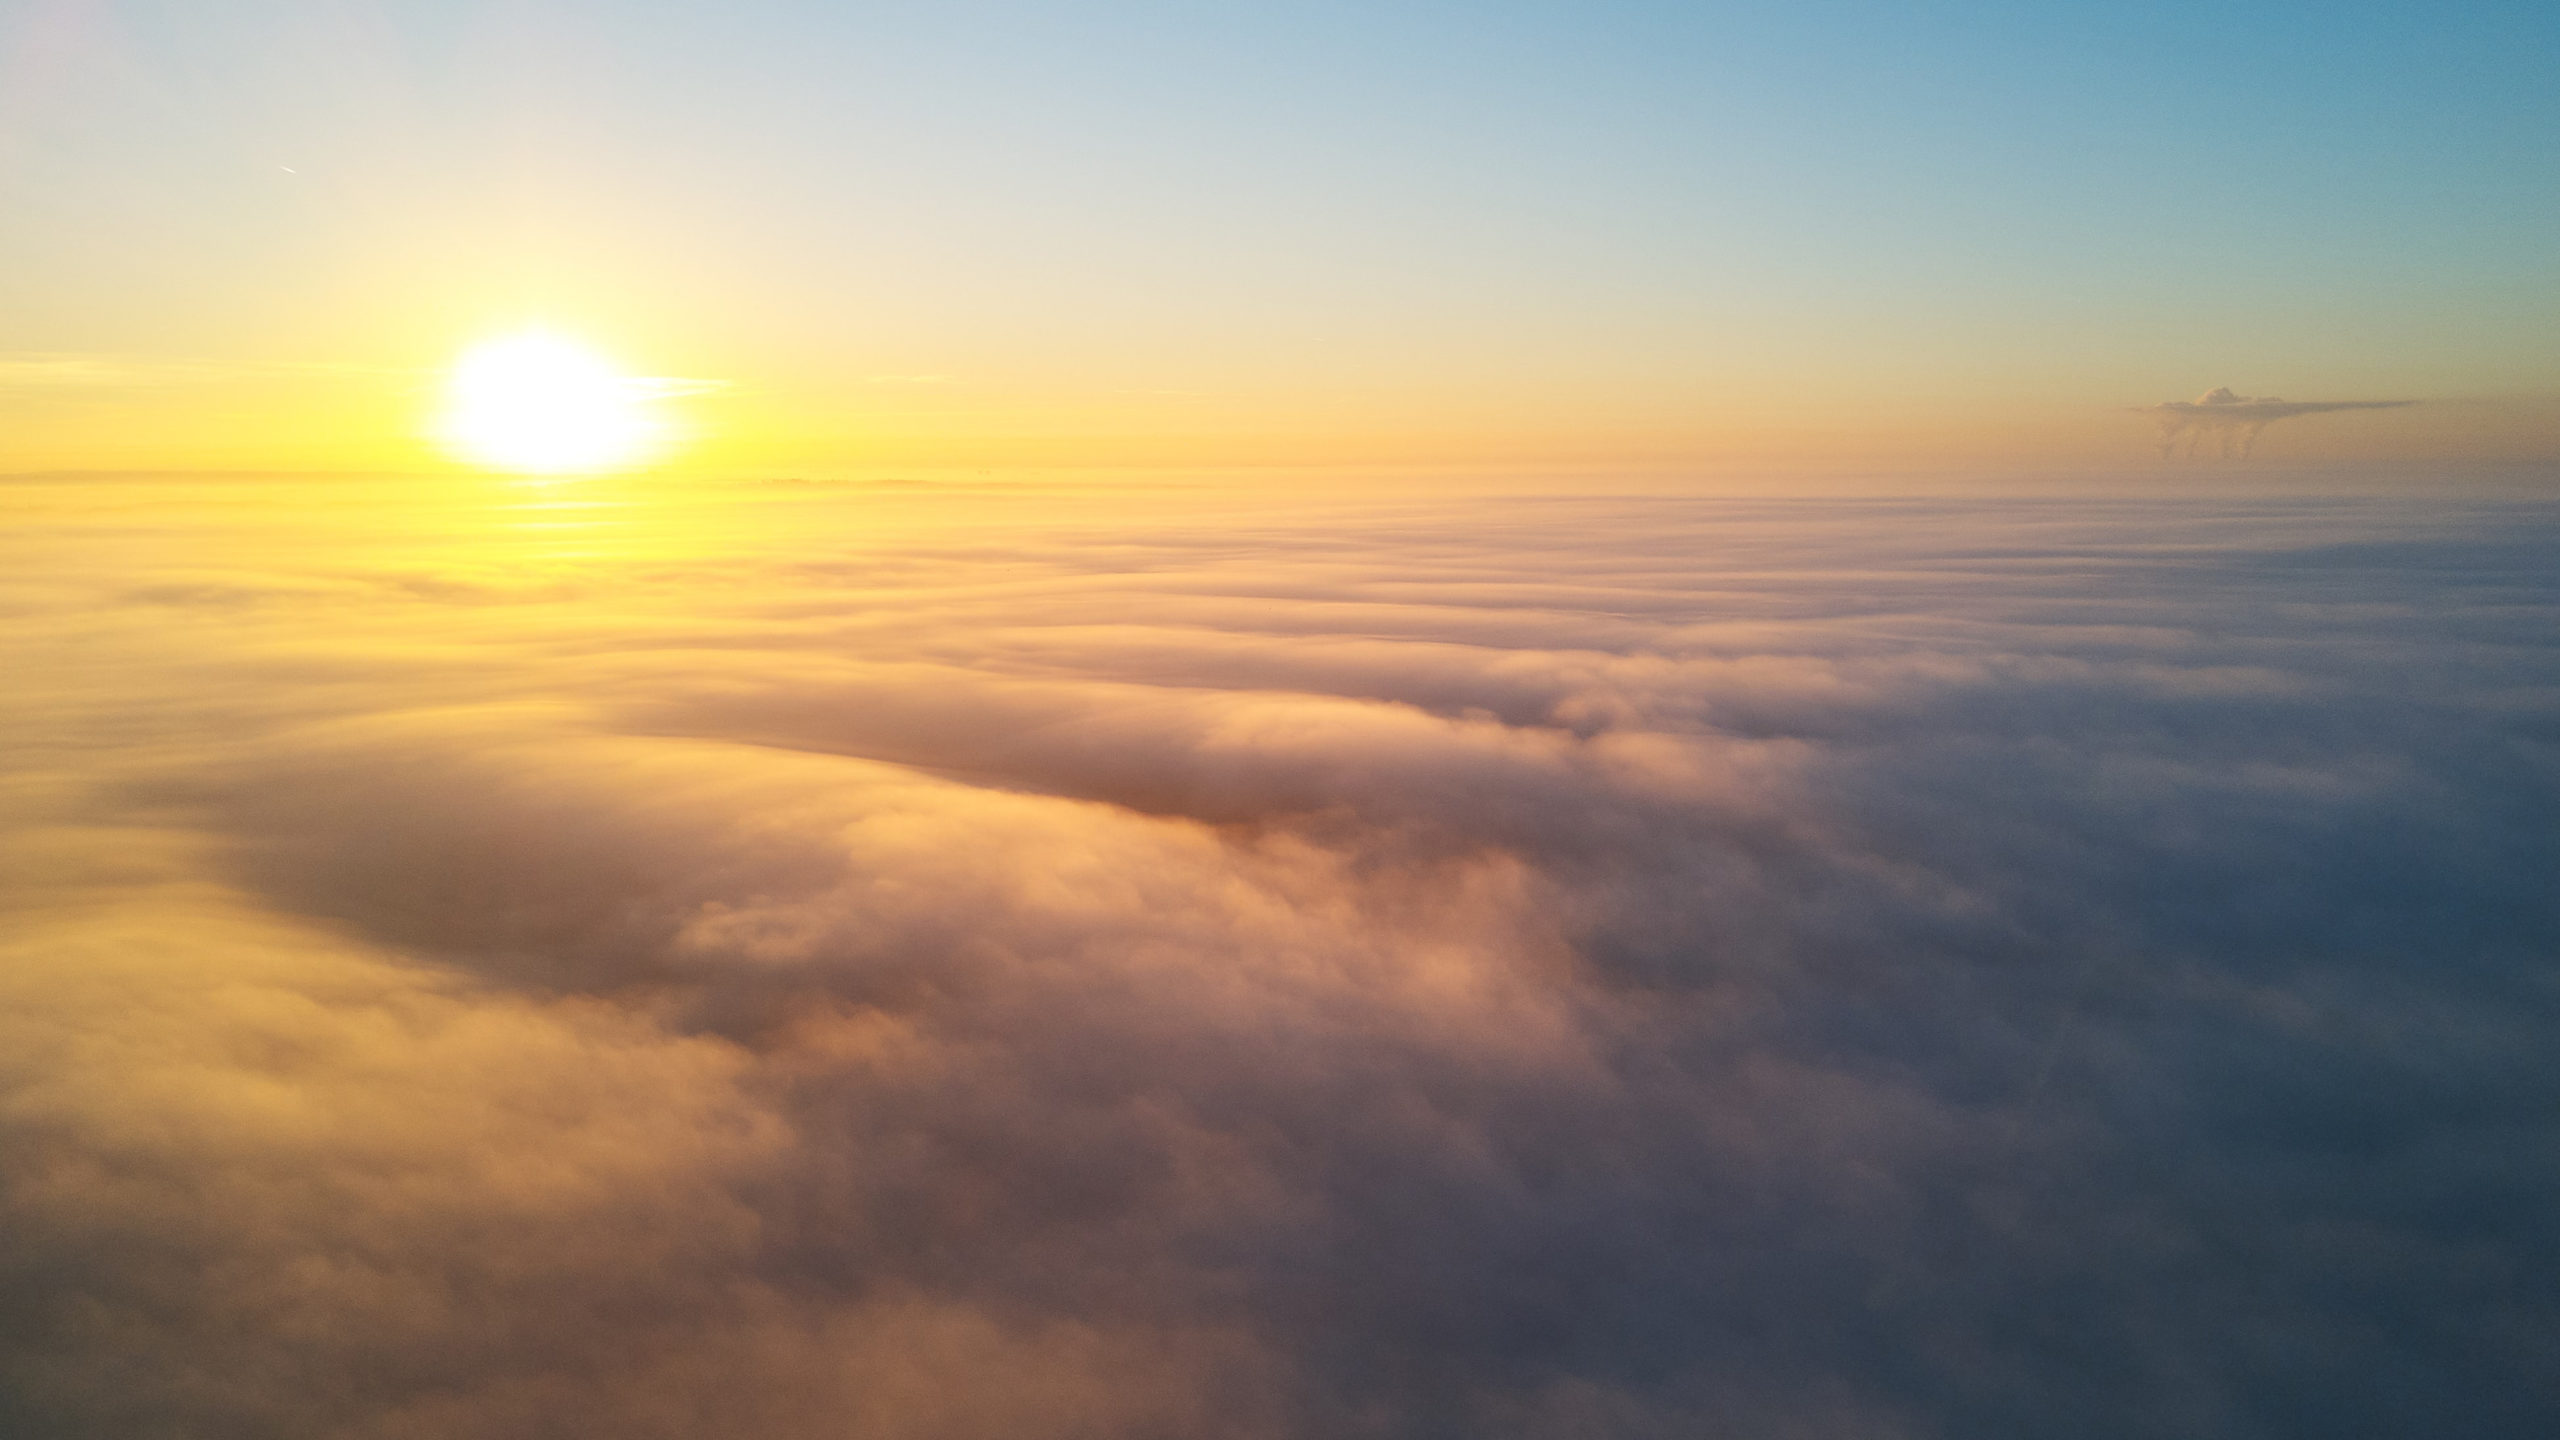 View of the sun rising above the clouds